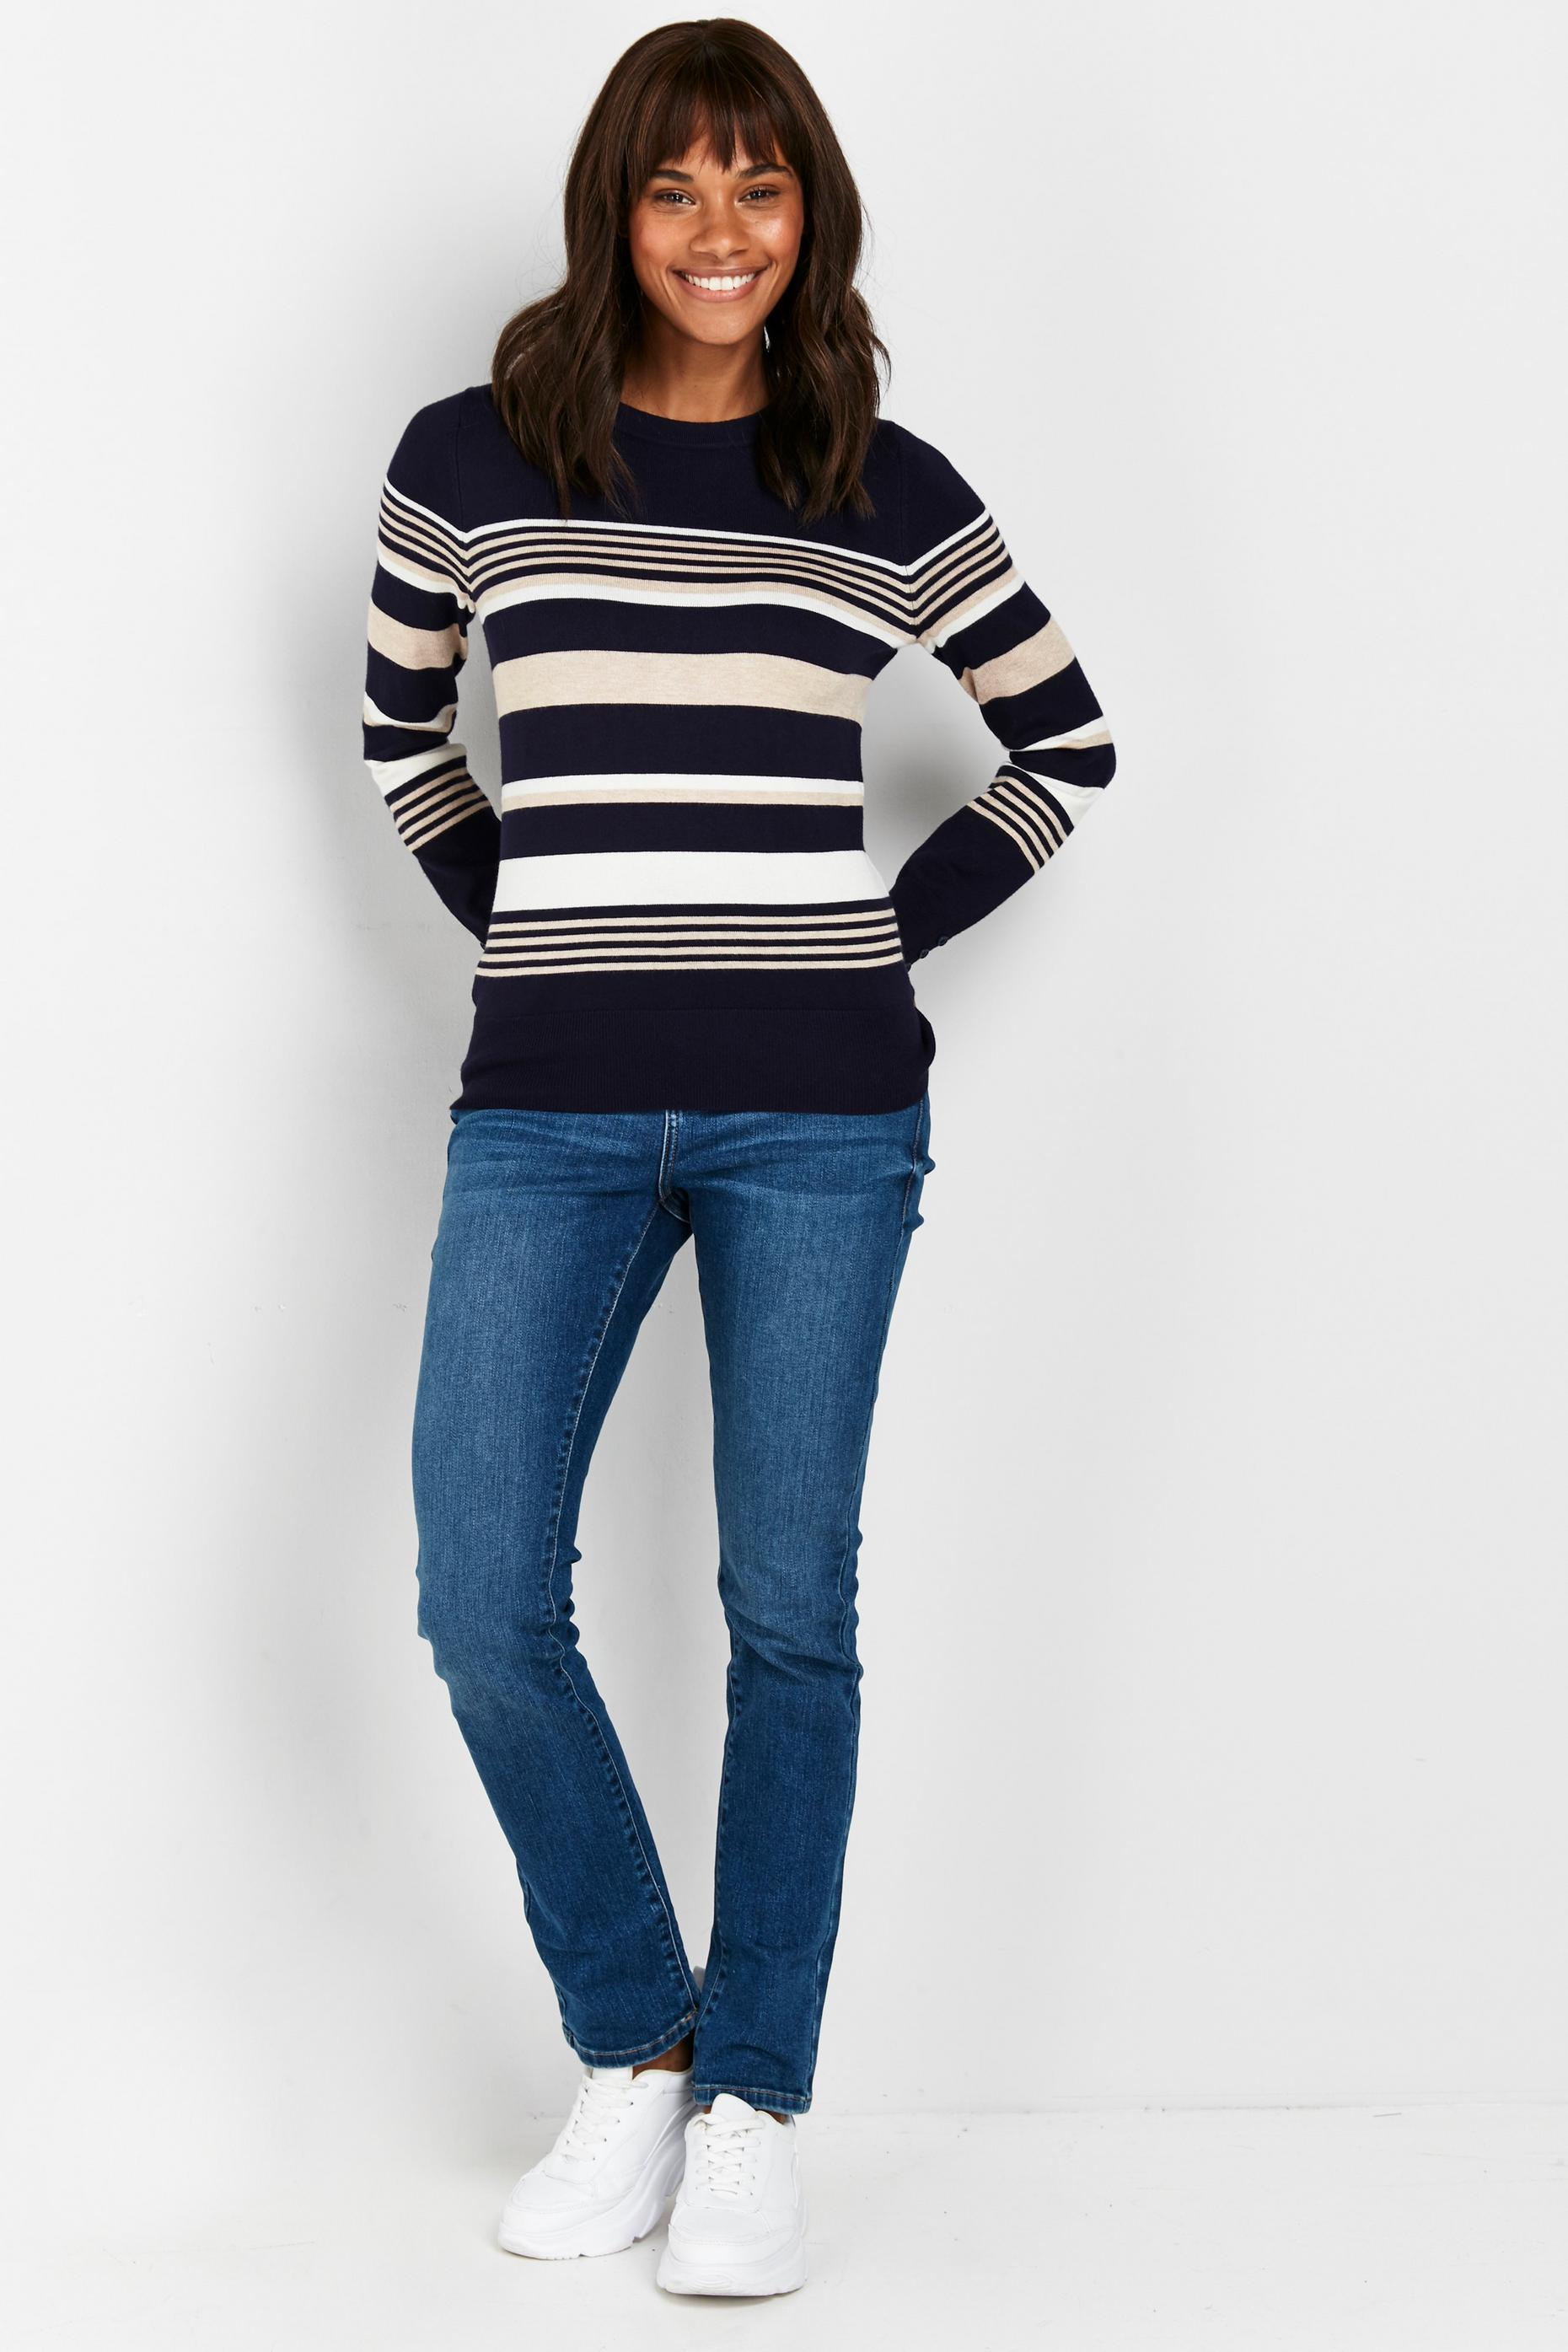 PETITE Navy Striped Jumper